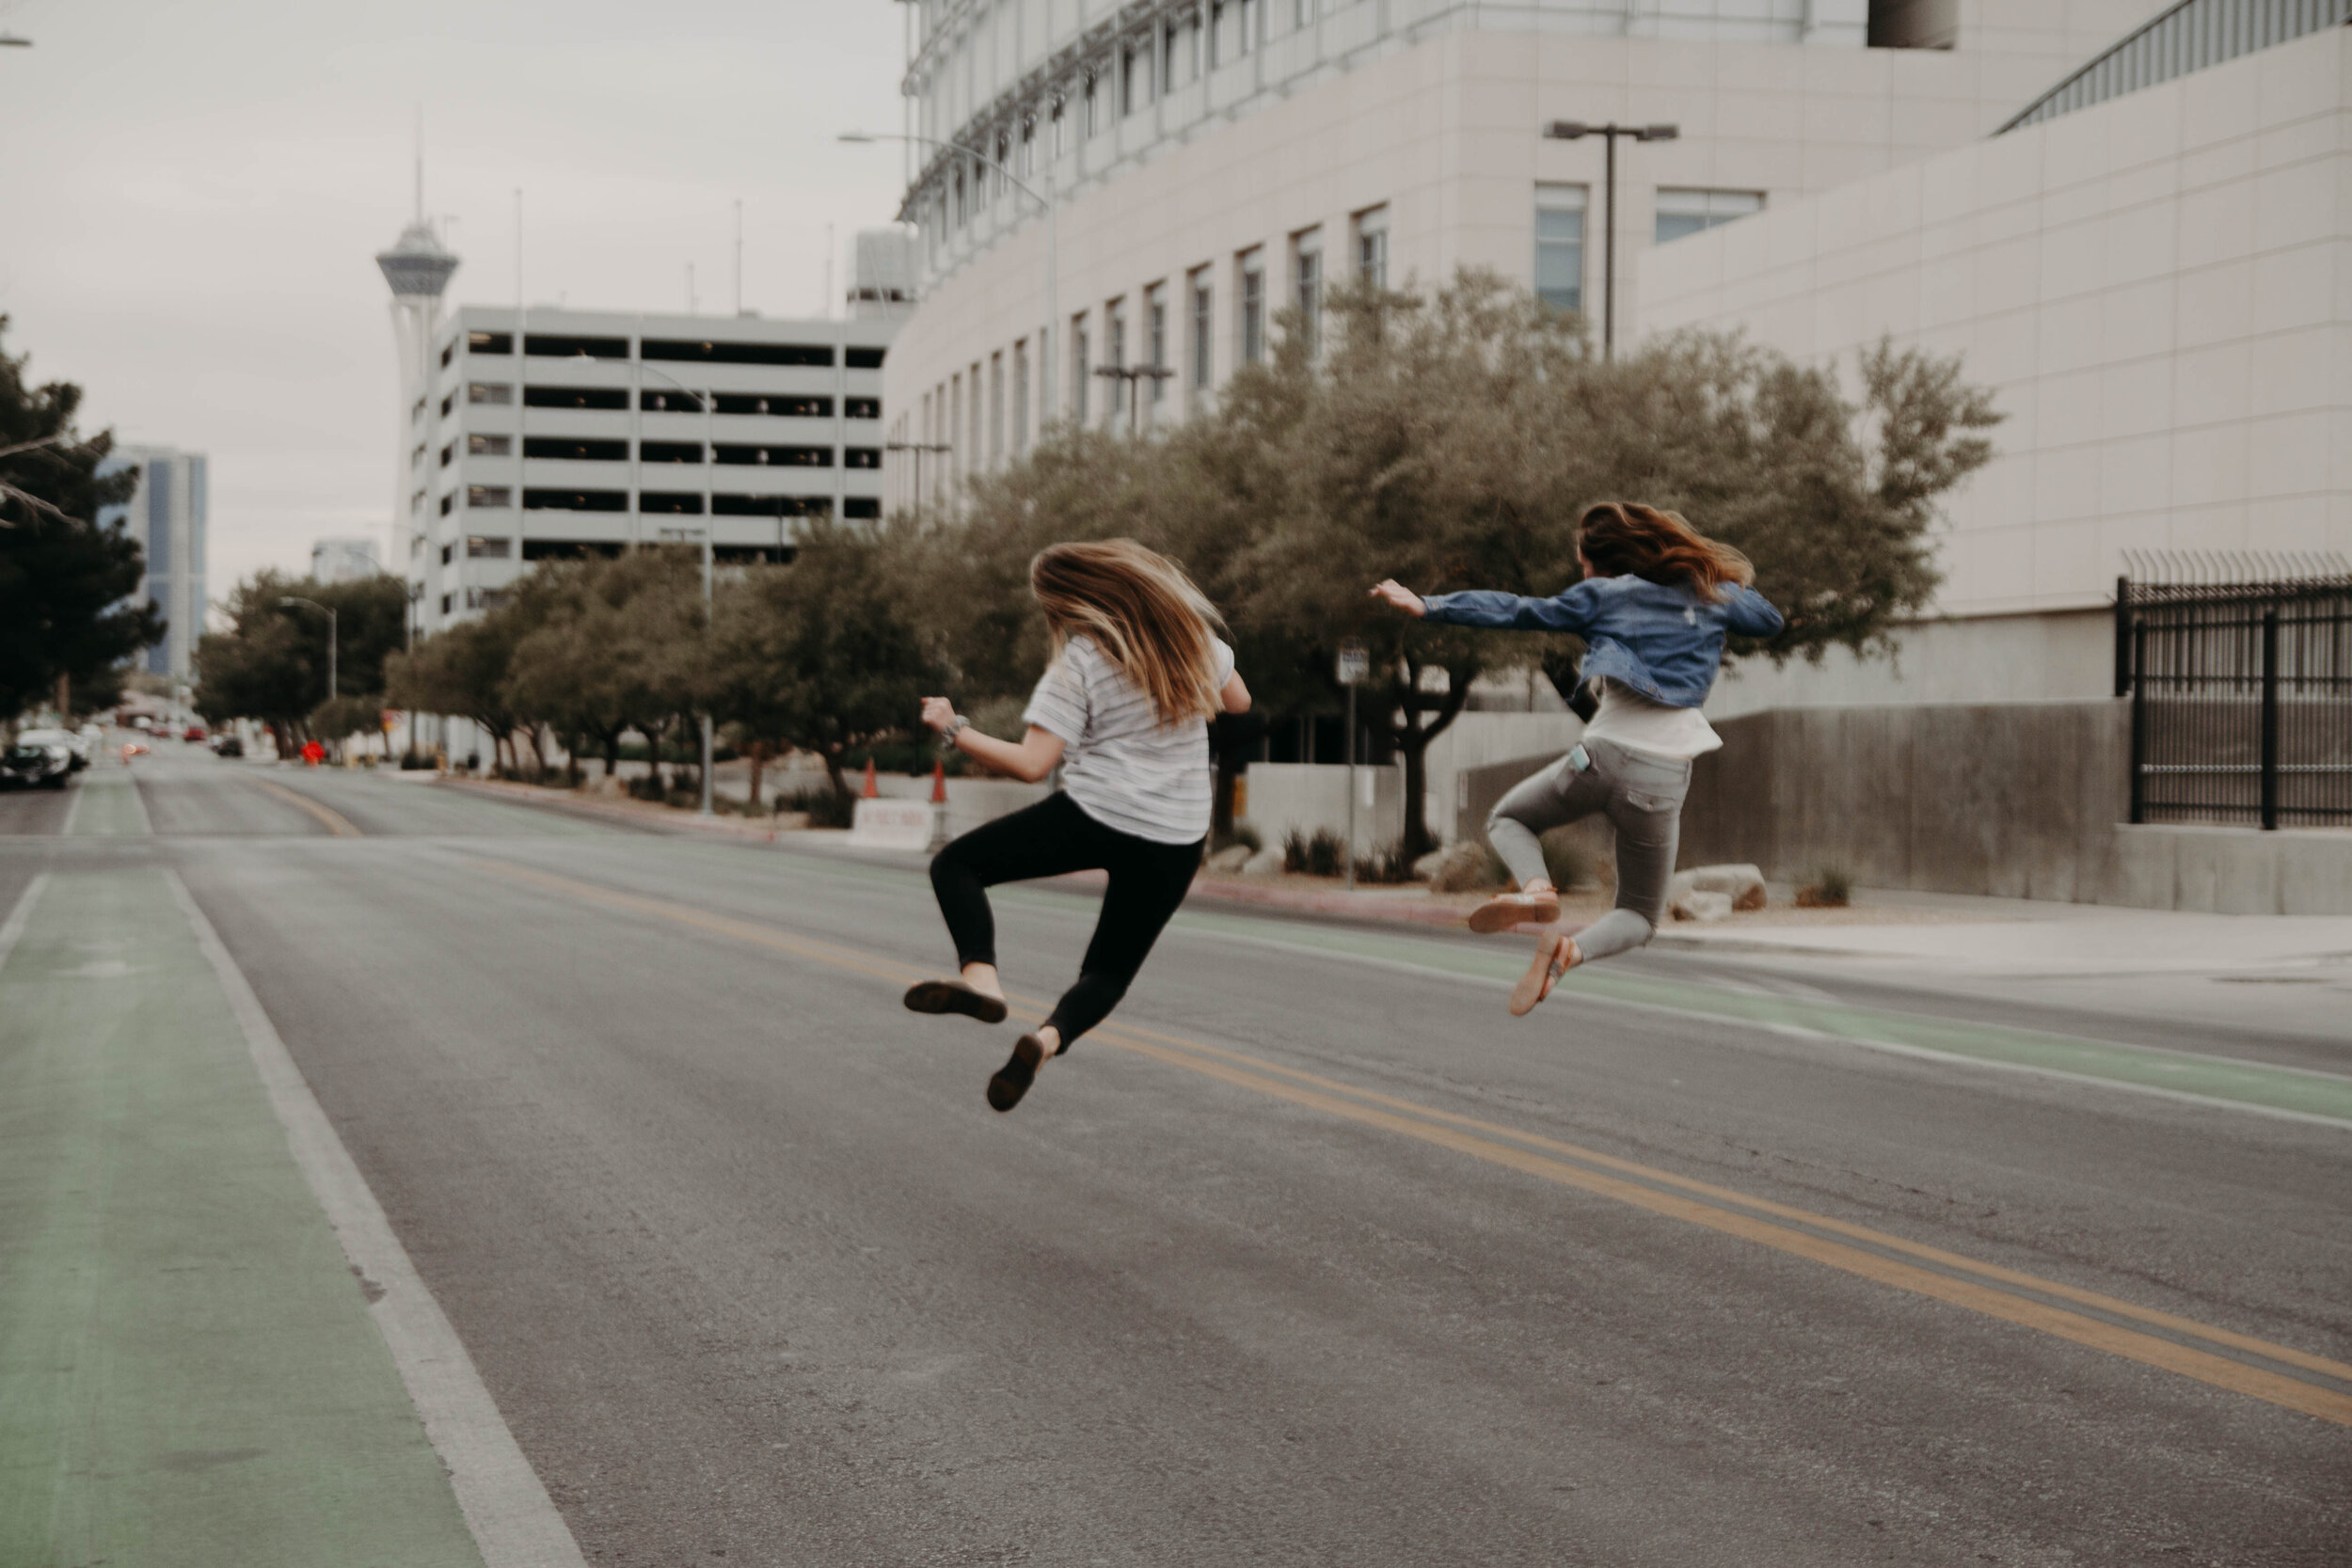 2 females jumping in the middle of a steet